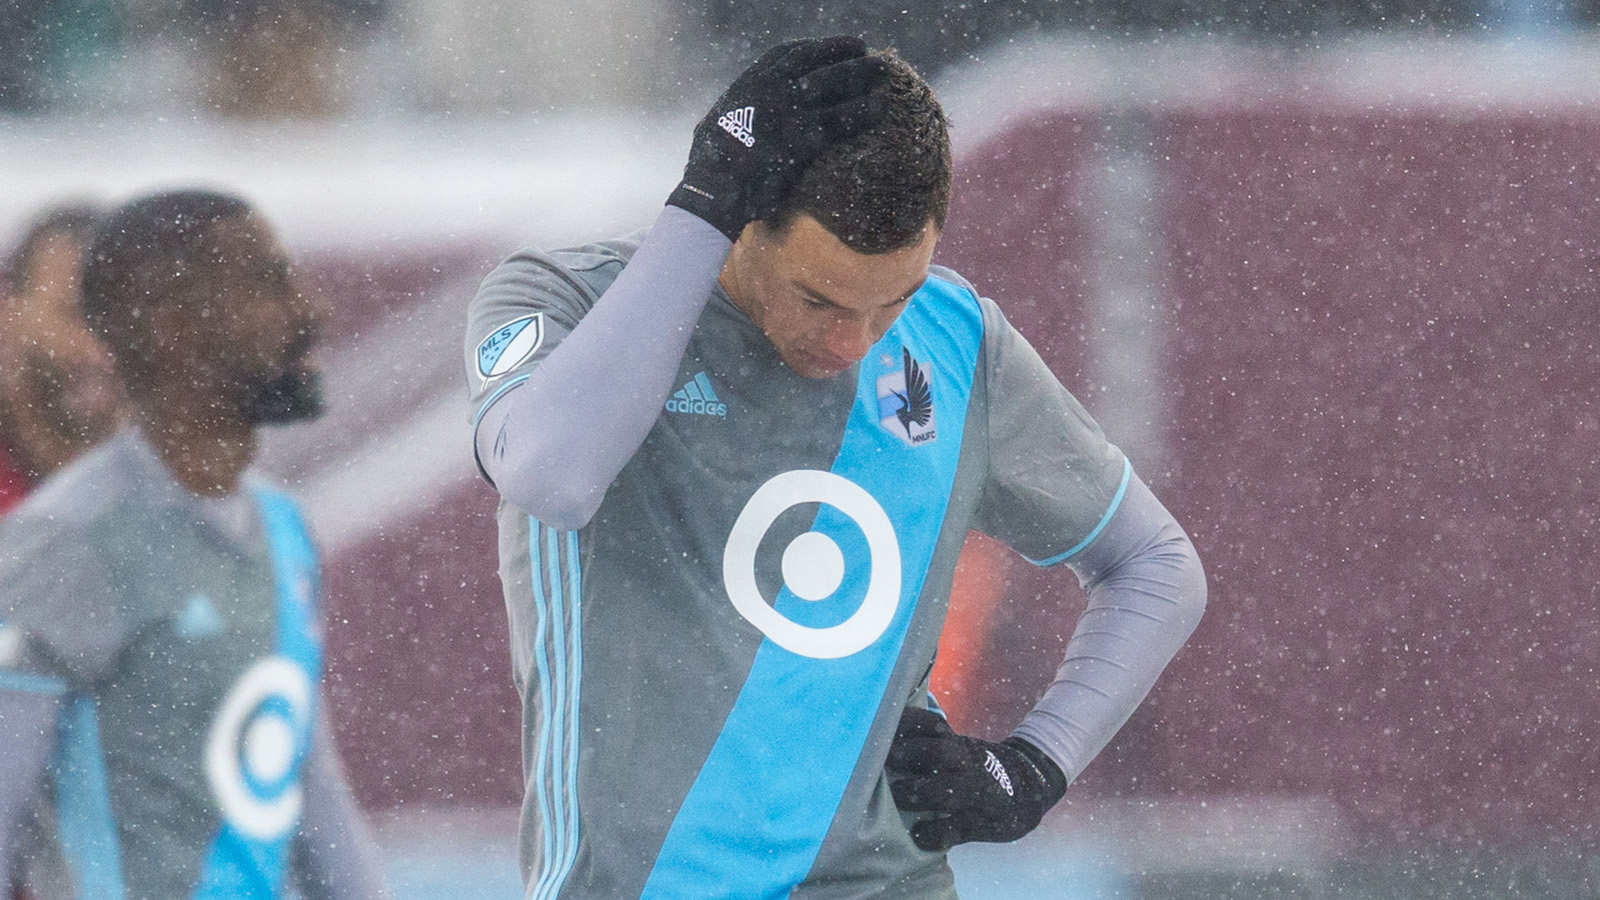 Mar 12, 2017; Minneapolis, MN, USA; Minnesota United forward Christian Ramirez (21) looks on during the second half against Atlanta United at TCF Bank Stadium. Atlanta United defeated Minnesota United 6-1. Mandatory Credit: Brace Hemmelgarn-USA TODAY Sports